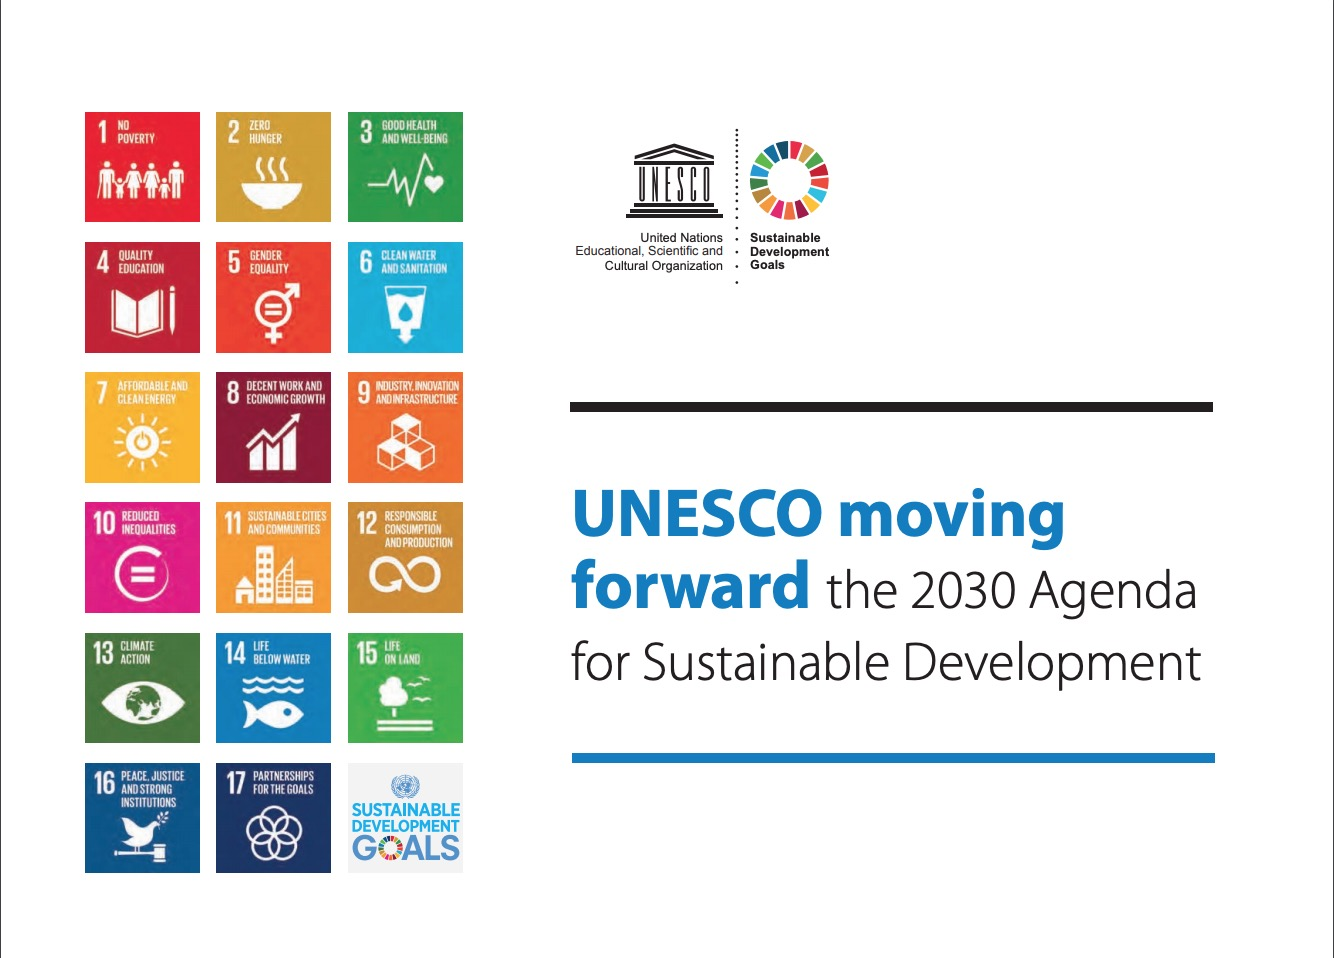 unesco moving forward